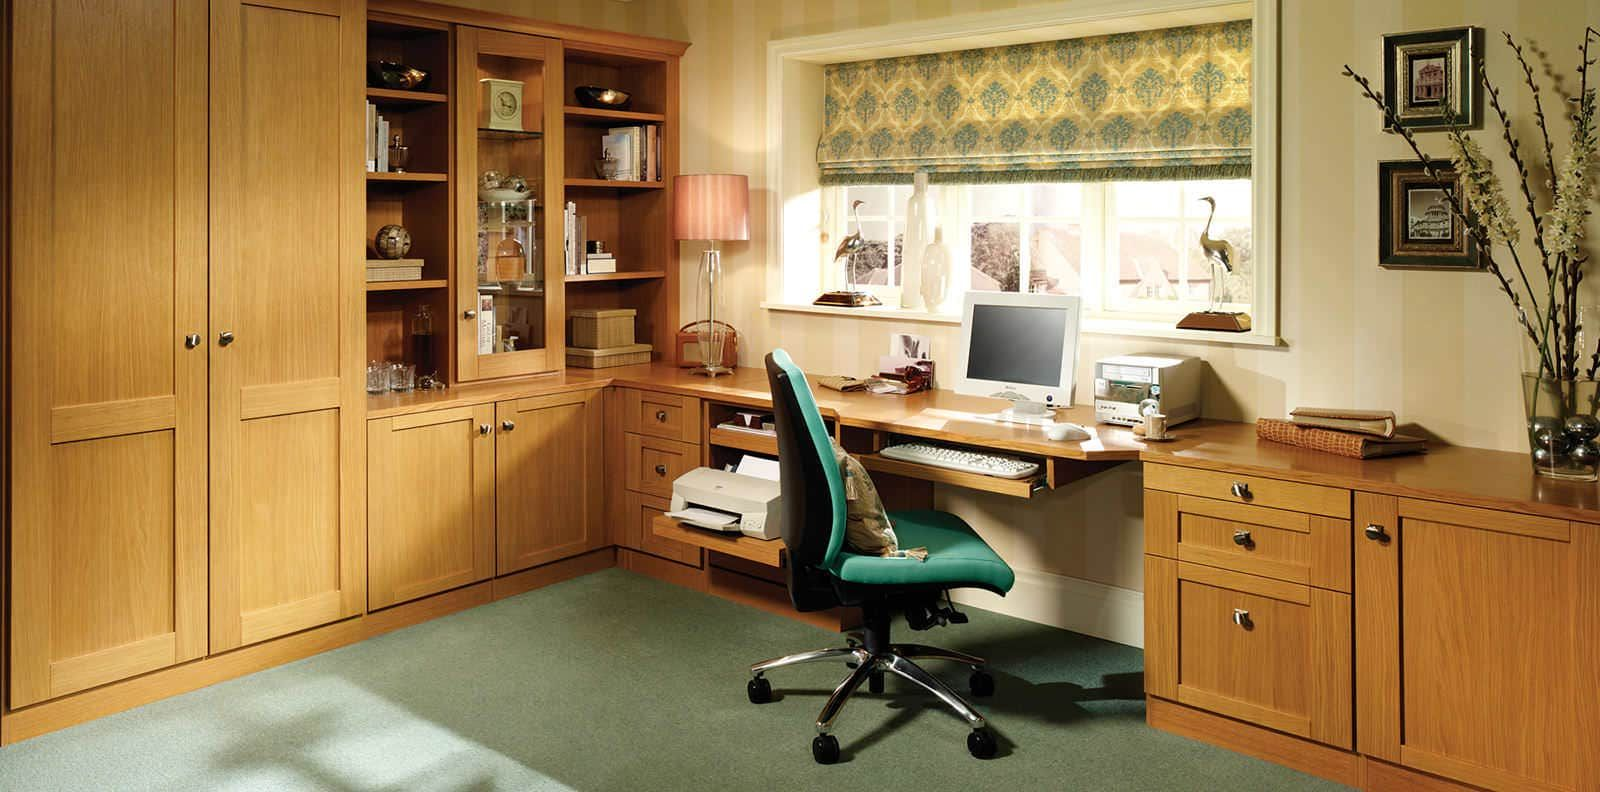 Bespoke oak fitted home office with glass display shelving